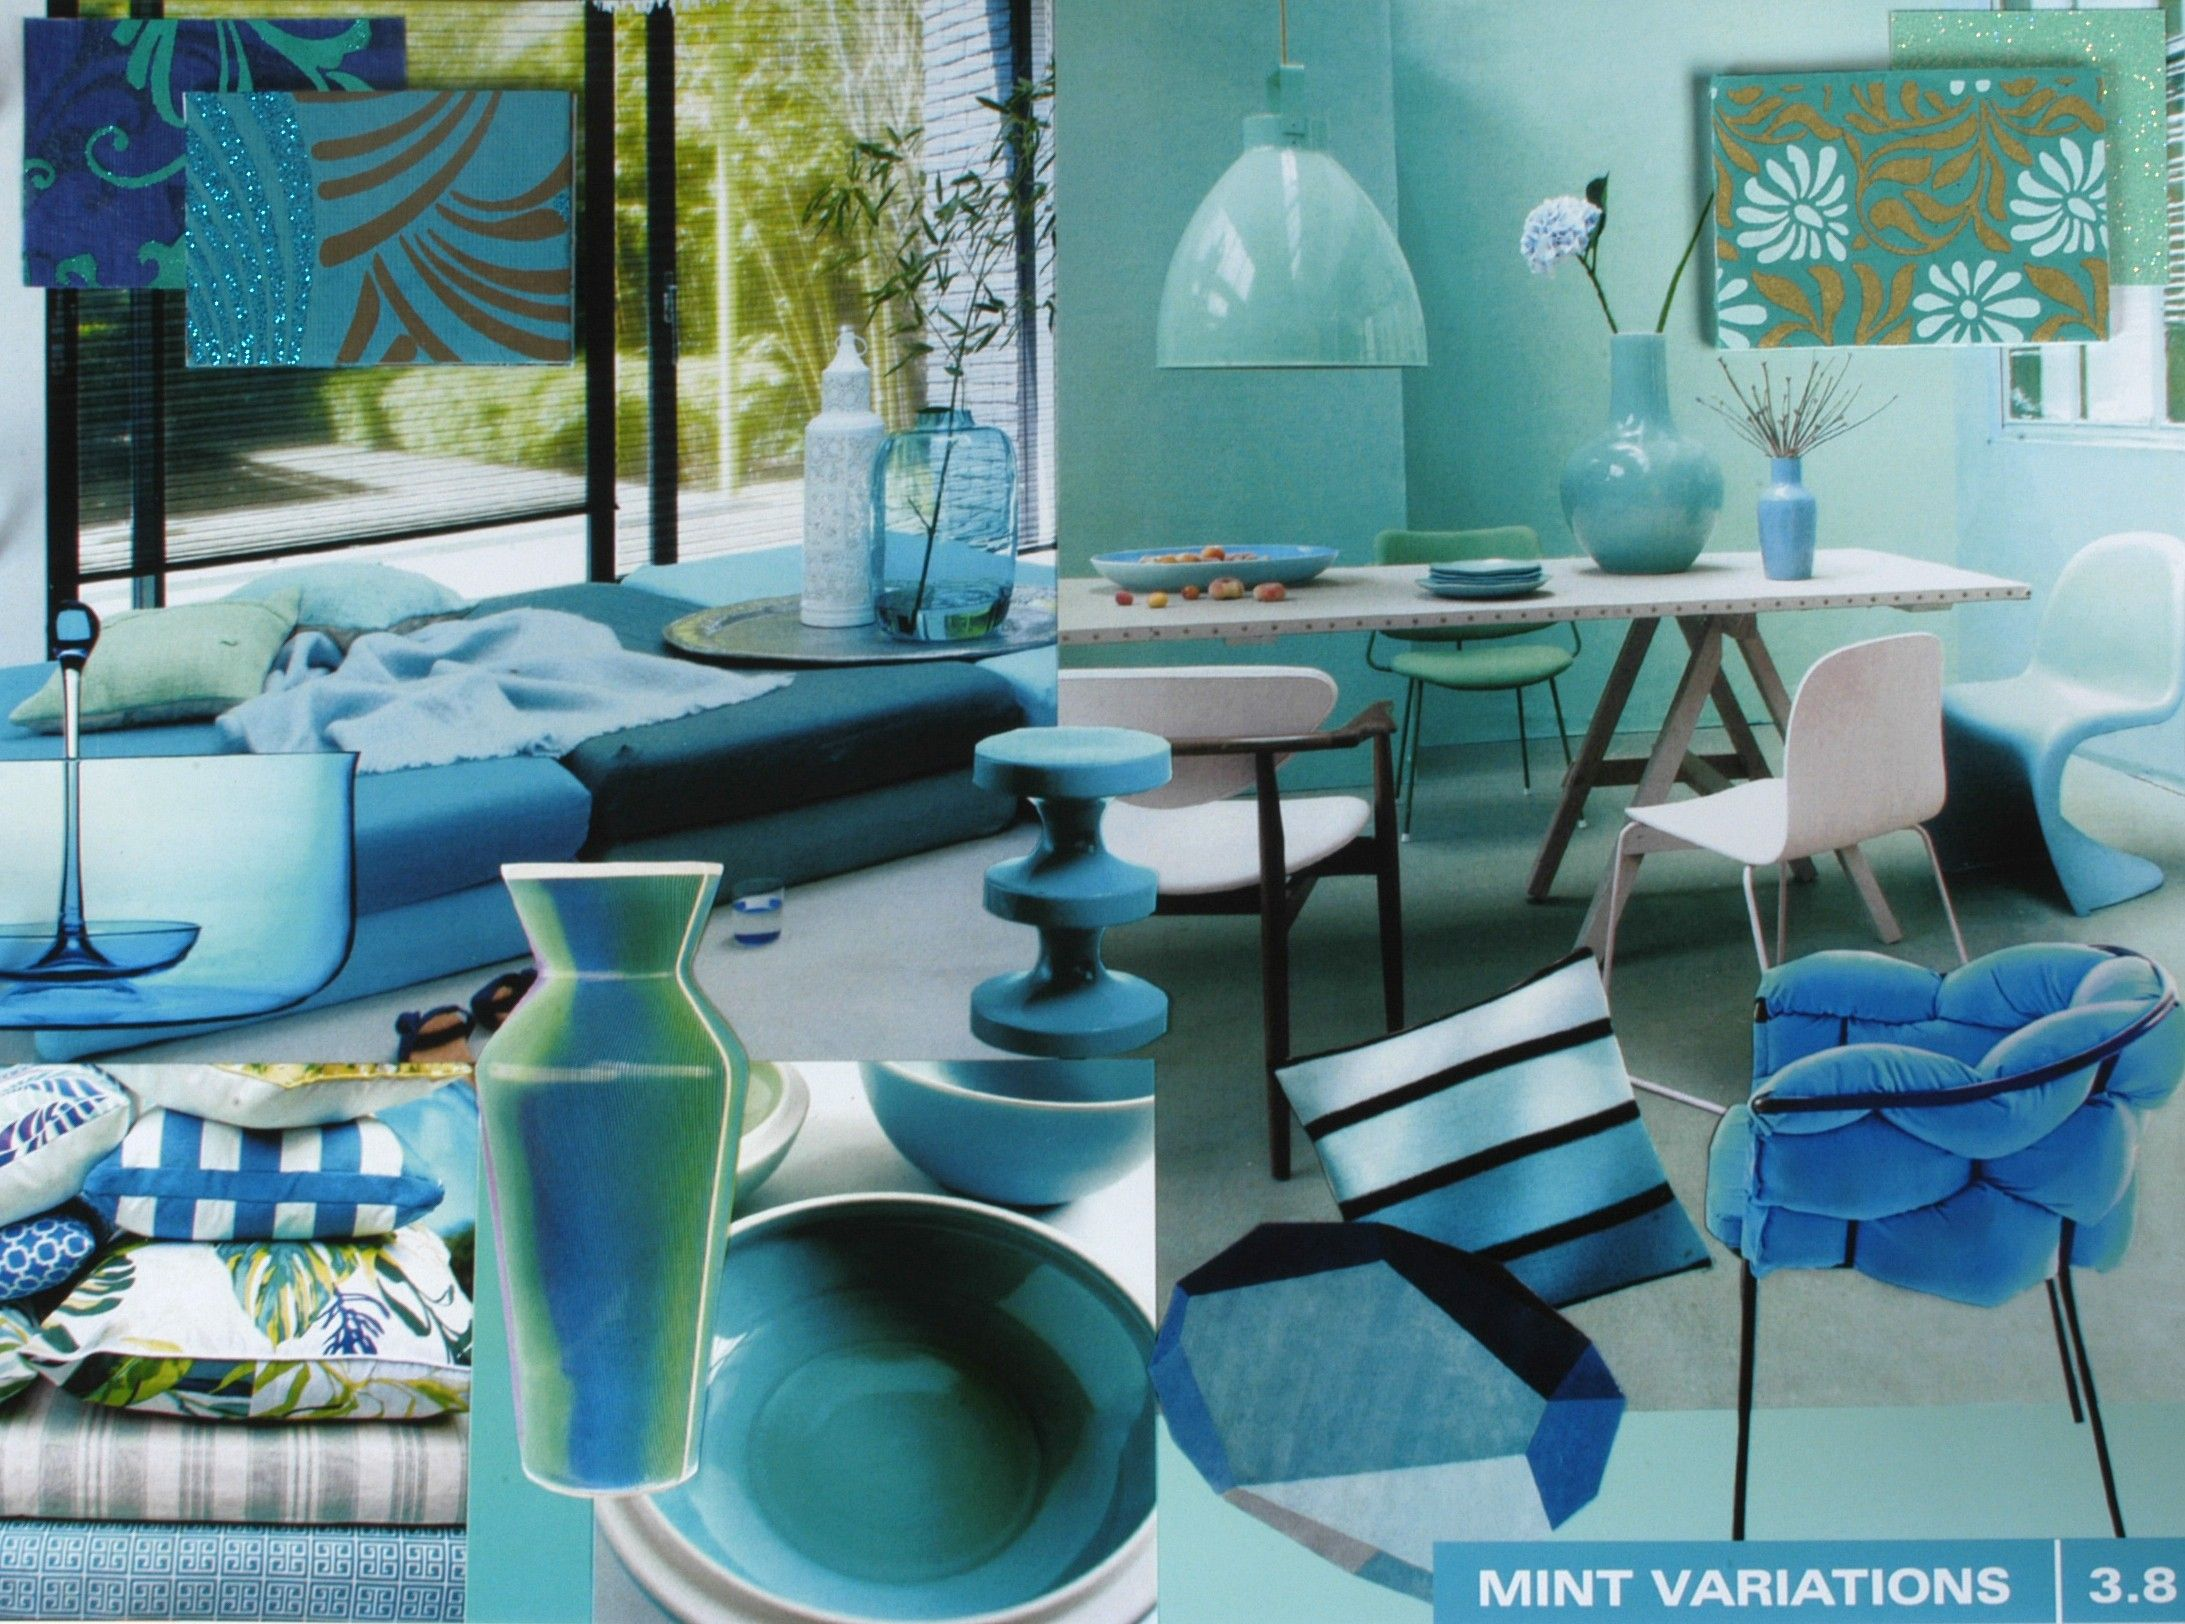 Colour Trends 2014 Interiors milou ket interiors 2014-15 | colour/trends 2016,2017,2018